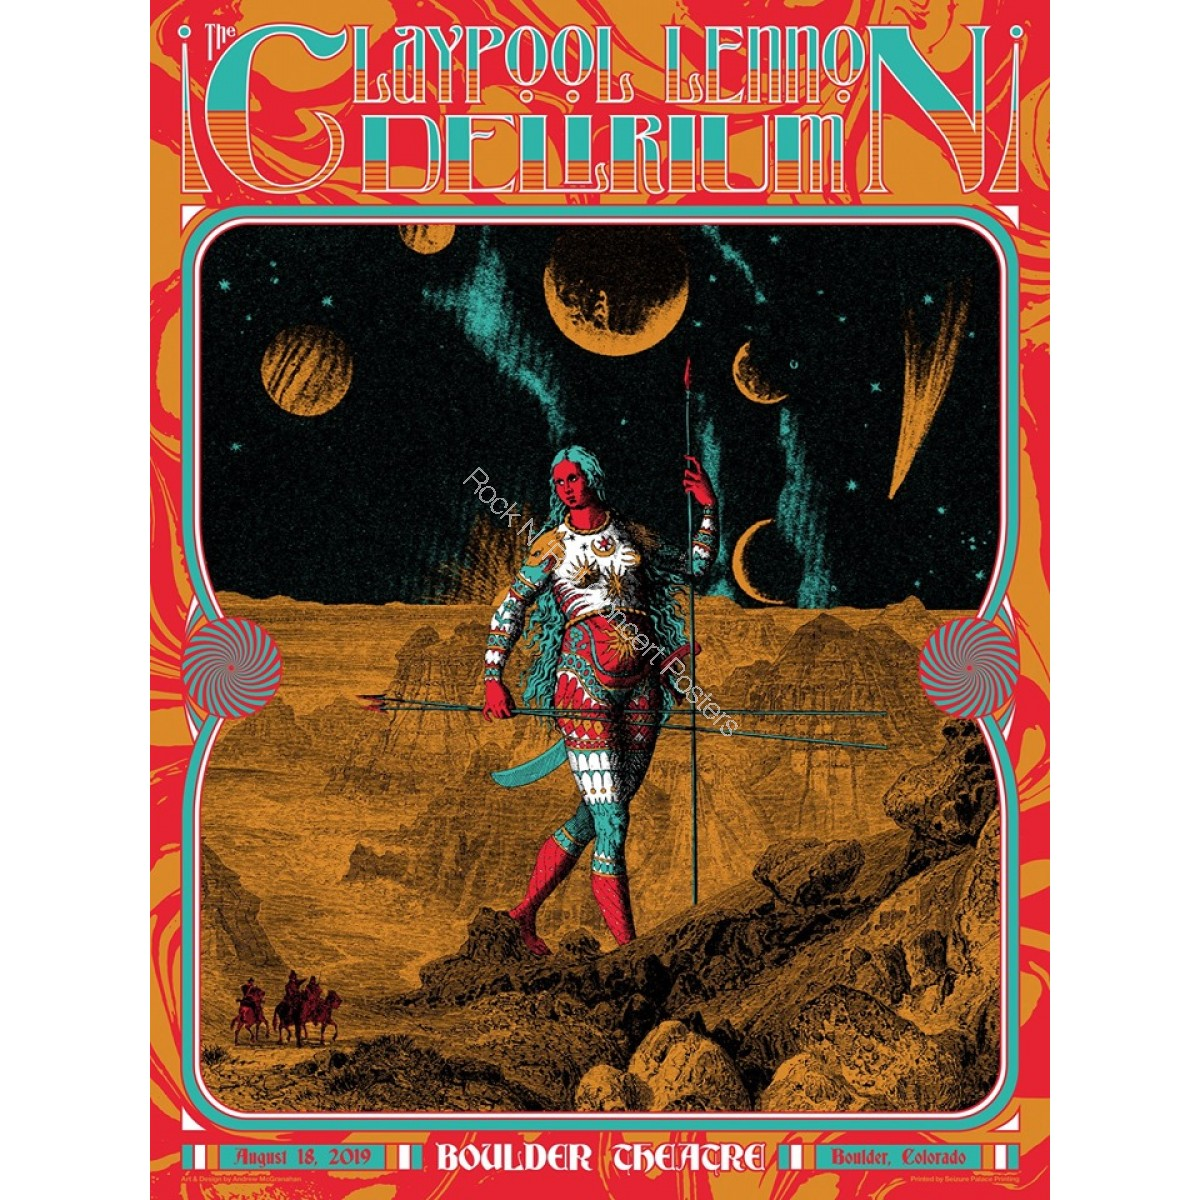 Claypool Lennon Delirium Boulder Theater Boulder Colorado August 18th 2019 Official Silk Screen Print